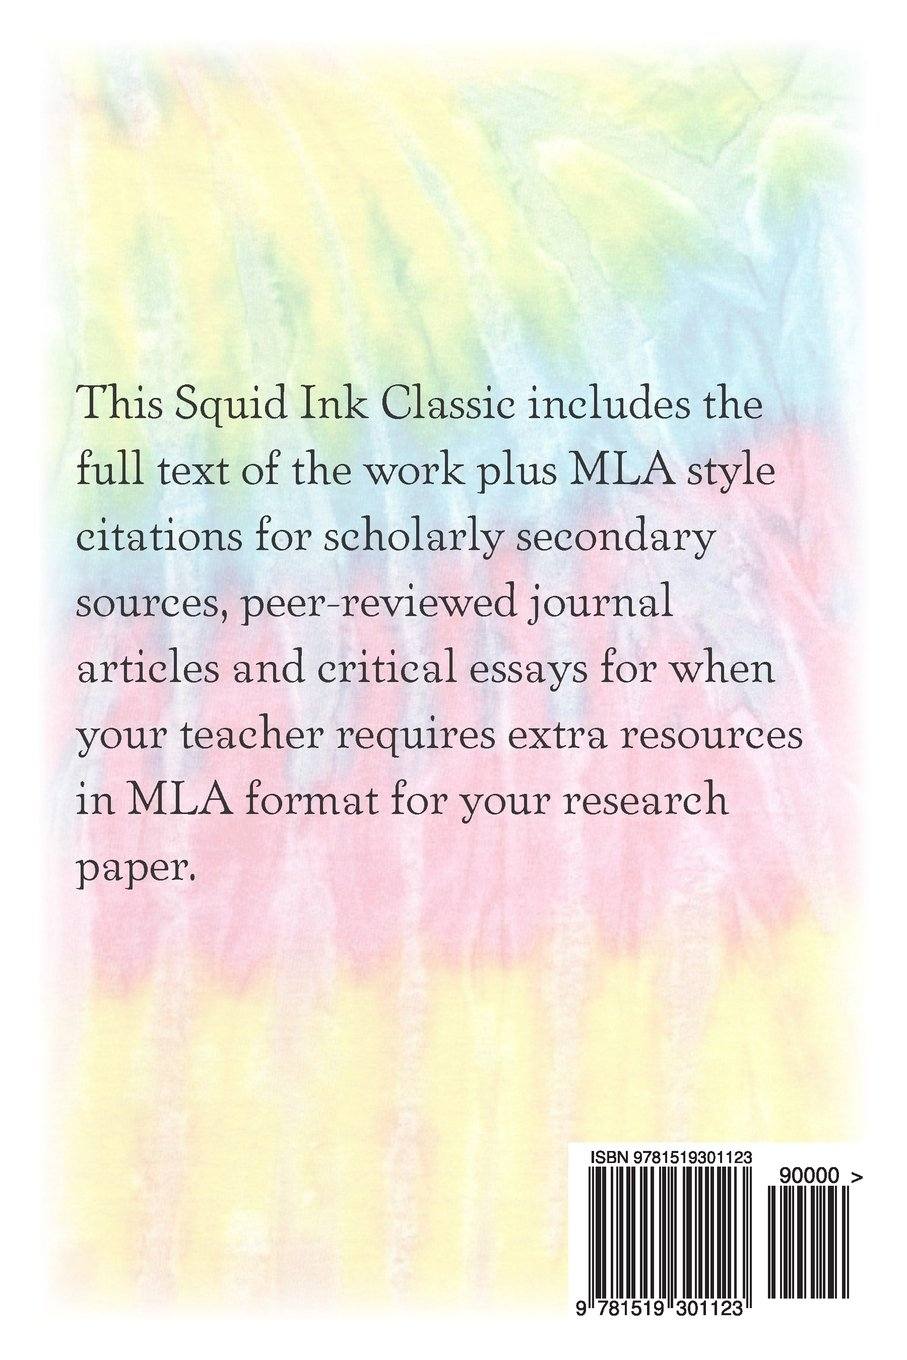 The Souls Of Black Folk Includes Mla Style Citations For Scholarly  The Souls Of Black Folk Includes Mla Style Citations For Scholarly  Secondary Sources Peerreviewed Journal Articles And Critical Essays  Squid Ink